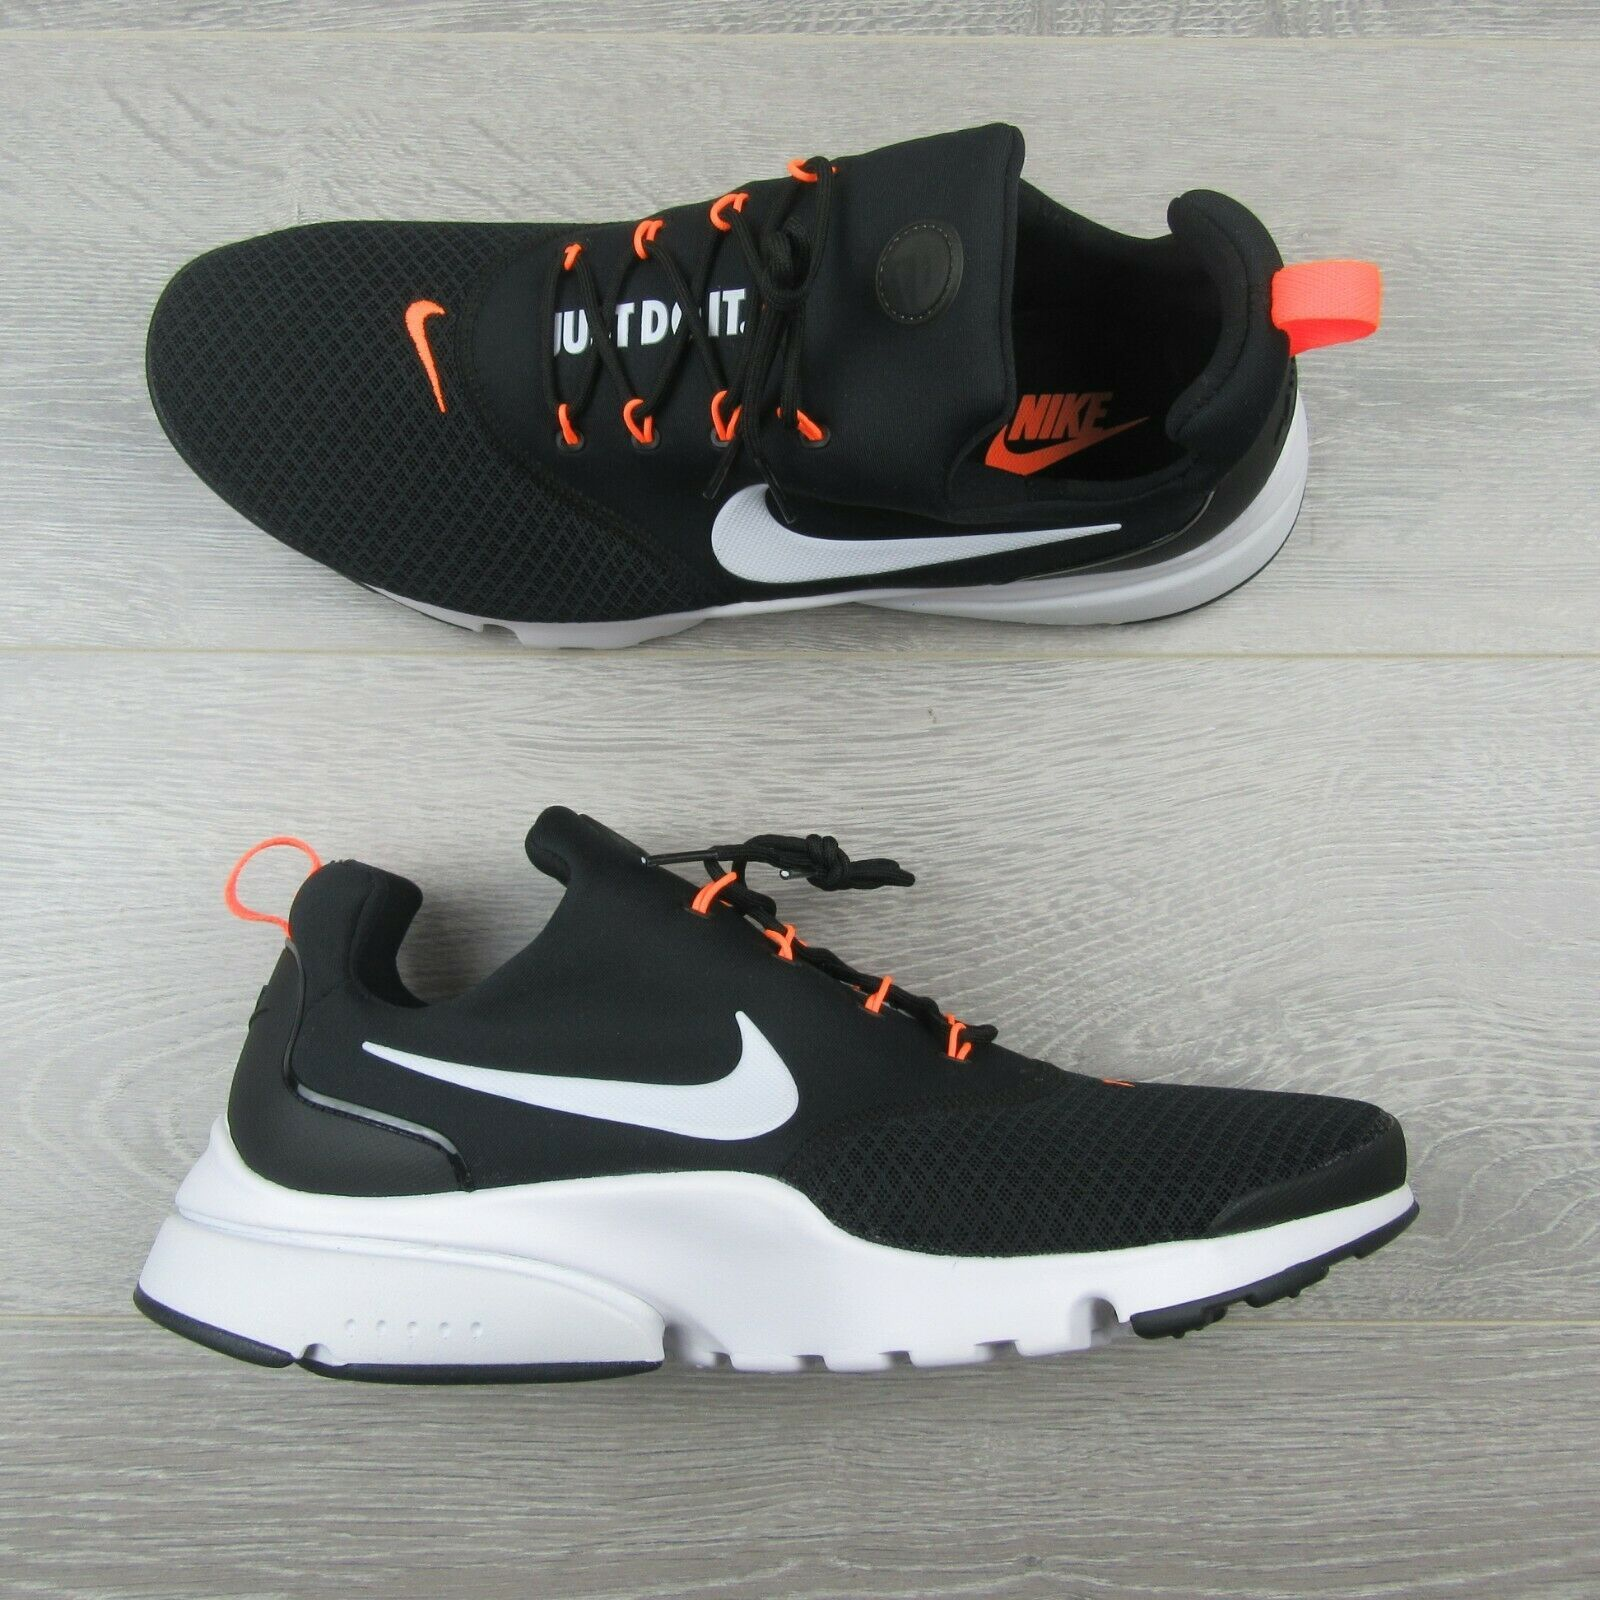 official photos 60306 a73c8 Nike Presto Fly JDI Black Running Shoes Size and 50 similar items